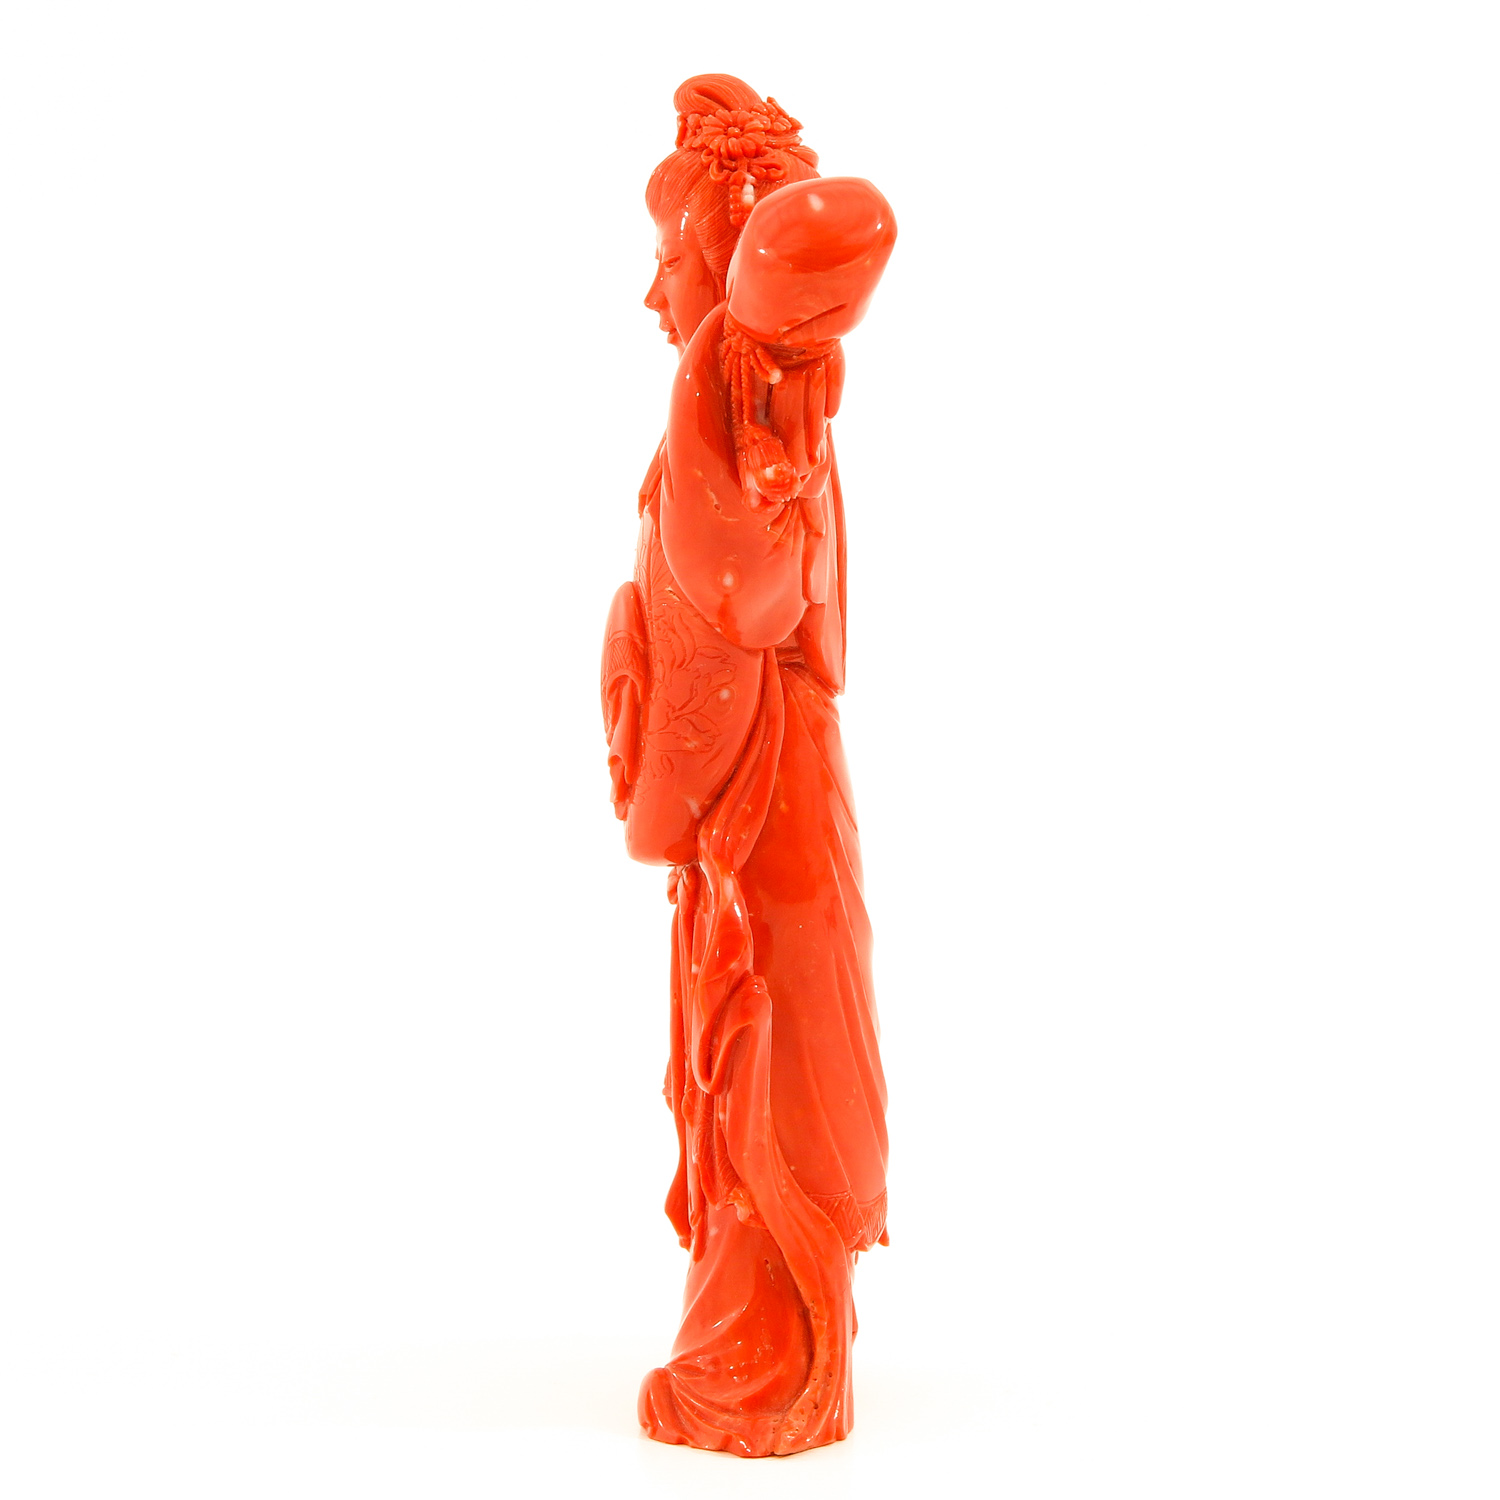 A Carved Red Coral Sculpture - Image 2 of 8